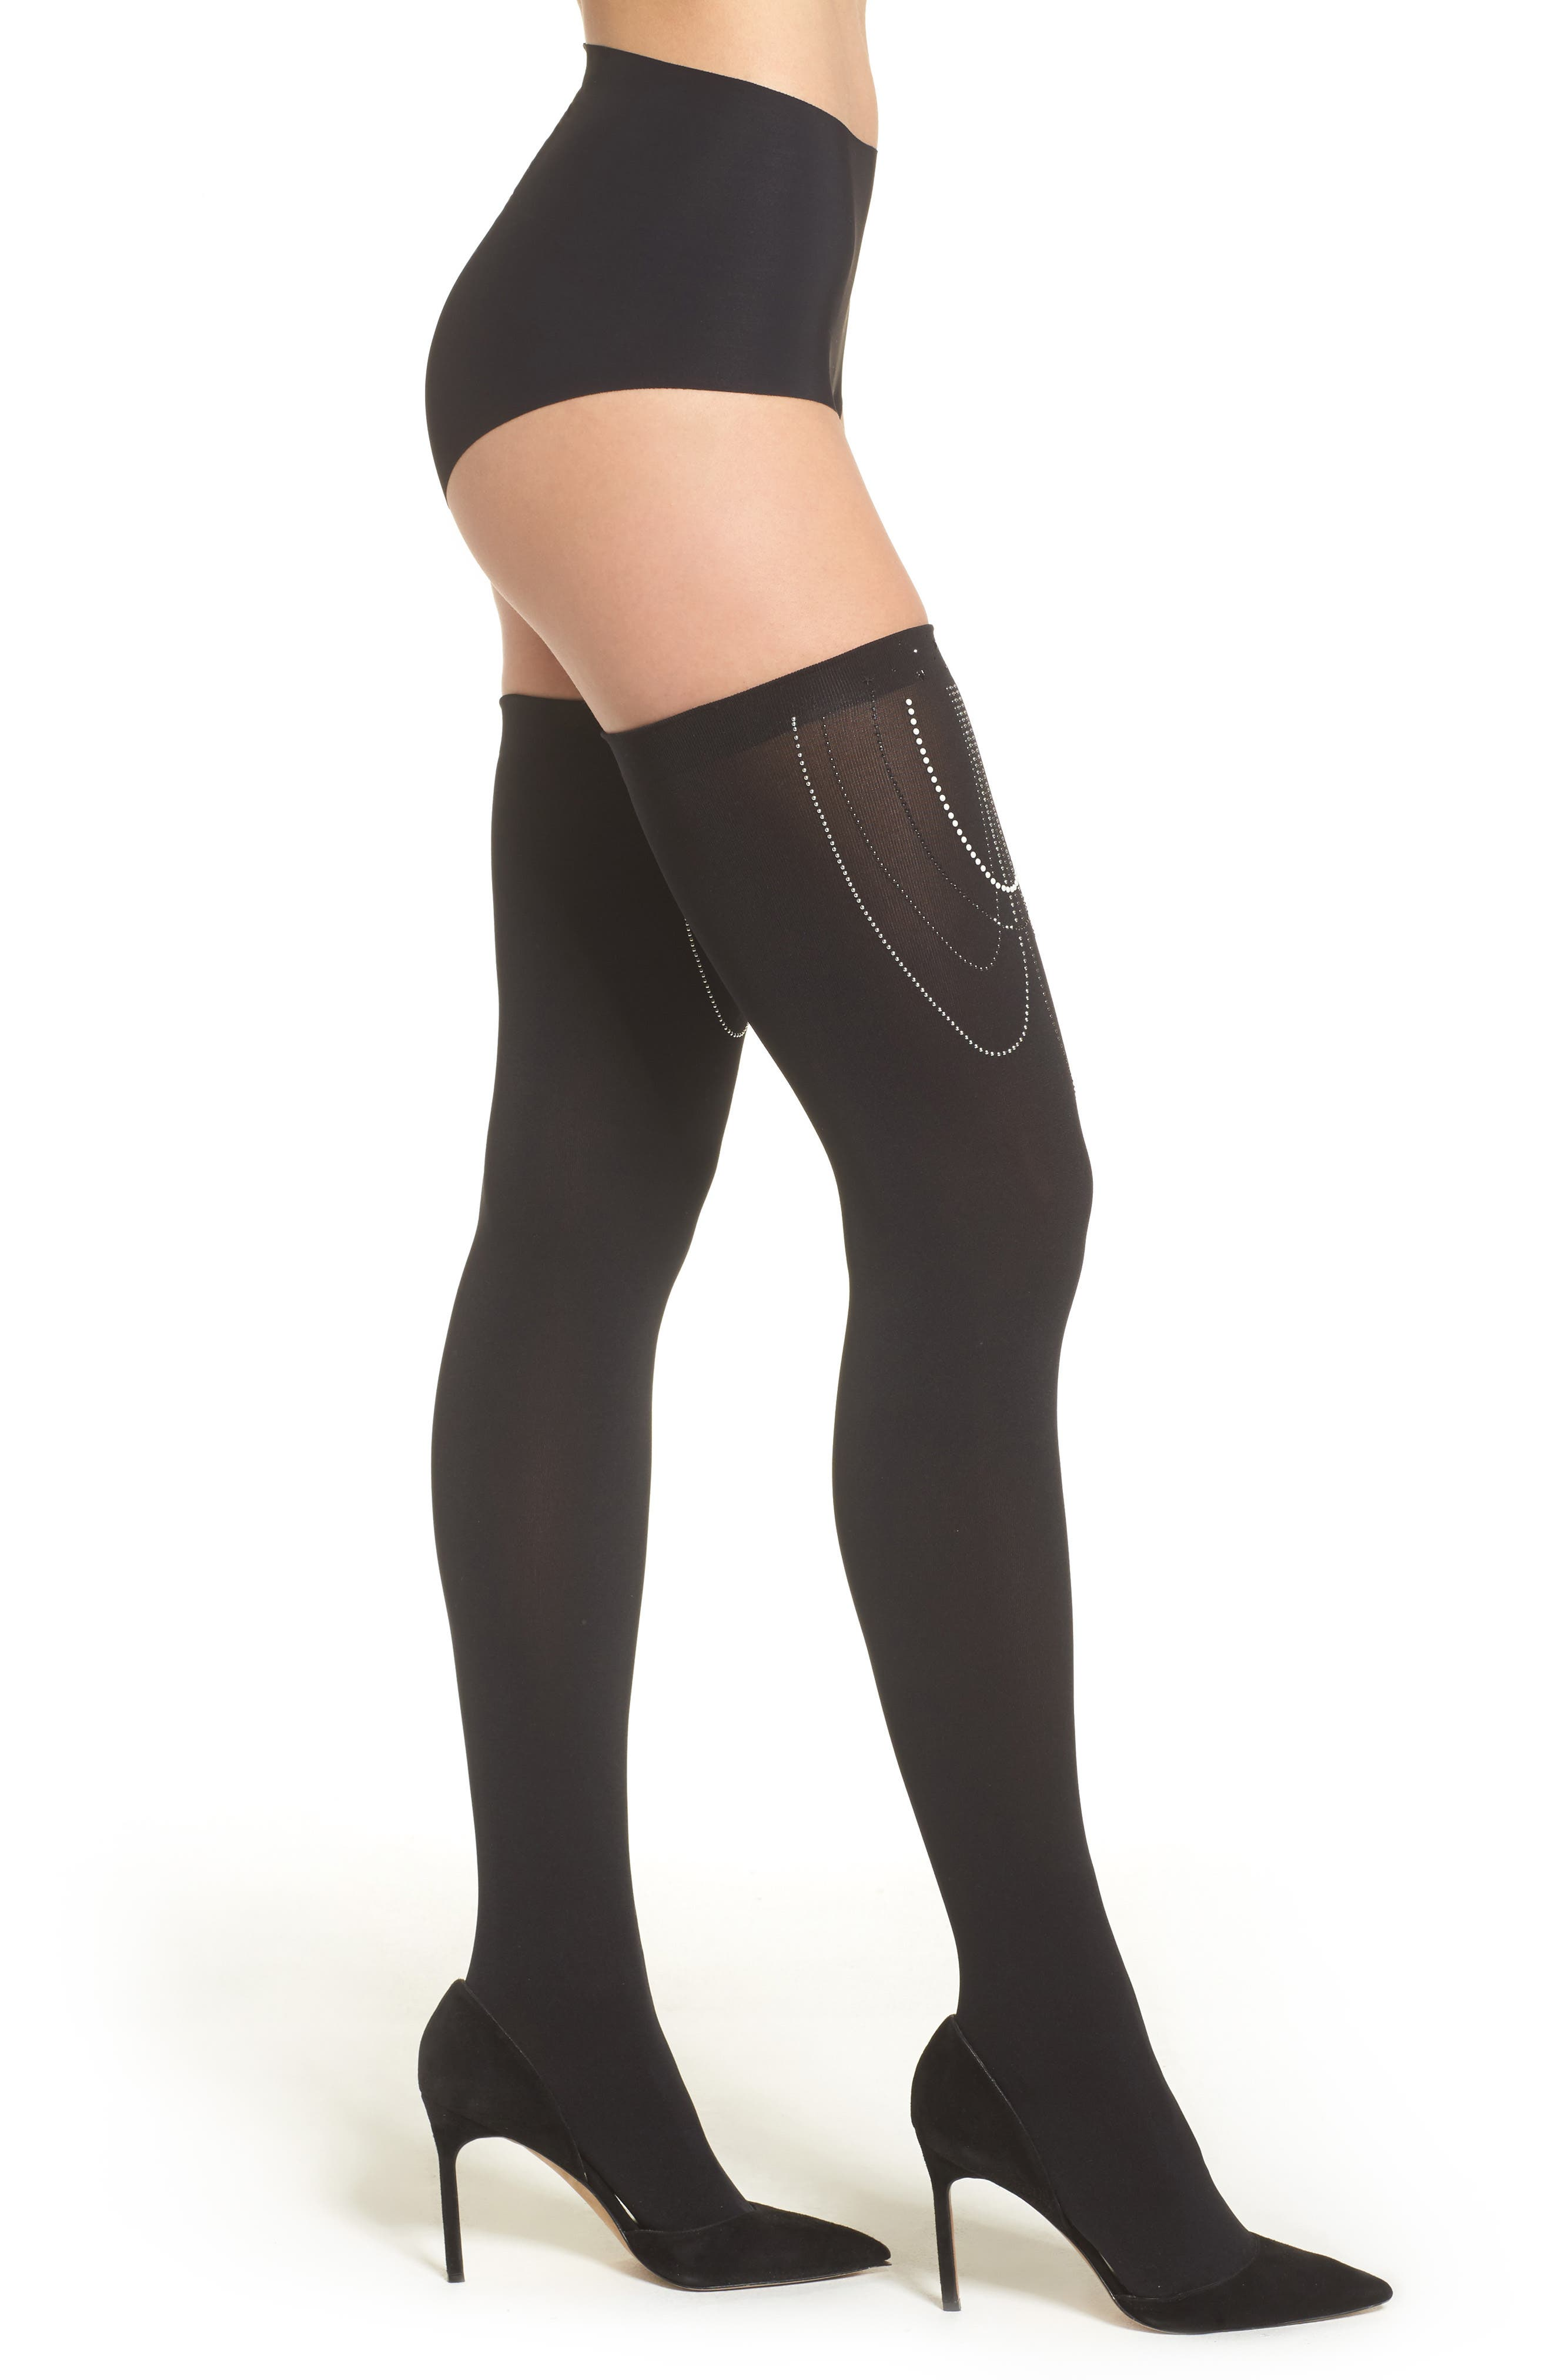 Main Image - Wolford Embellished Stay-Put Stockings